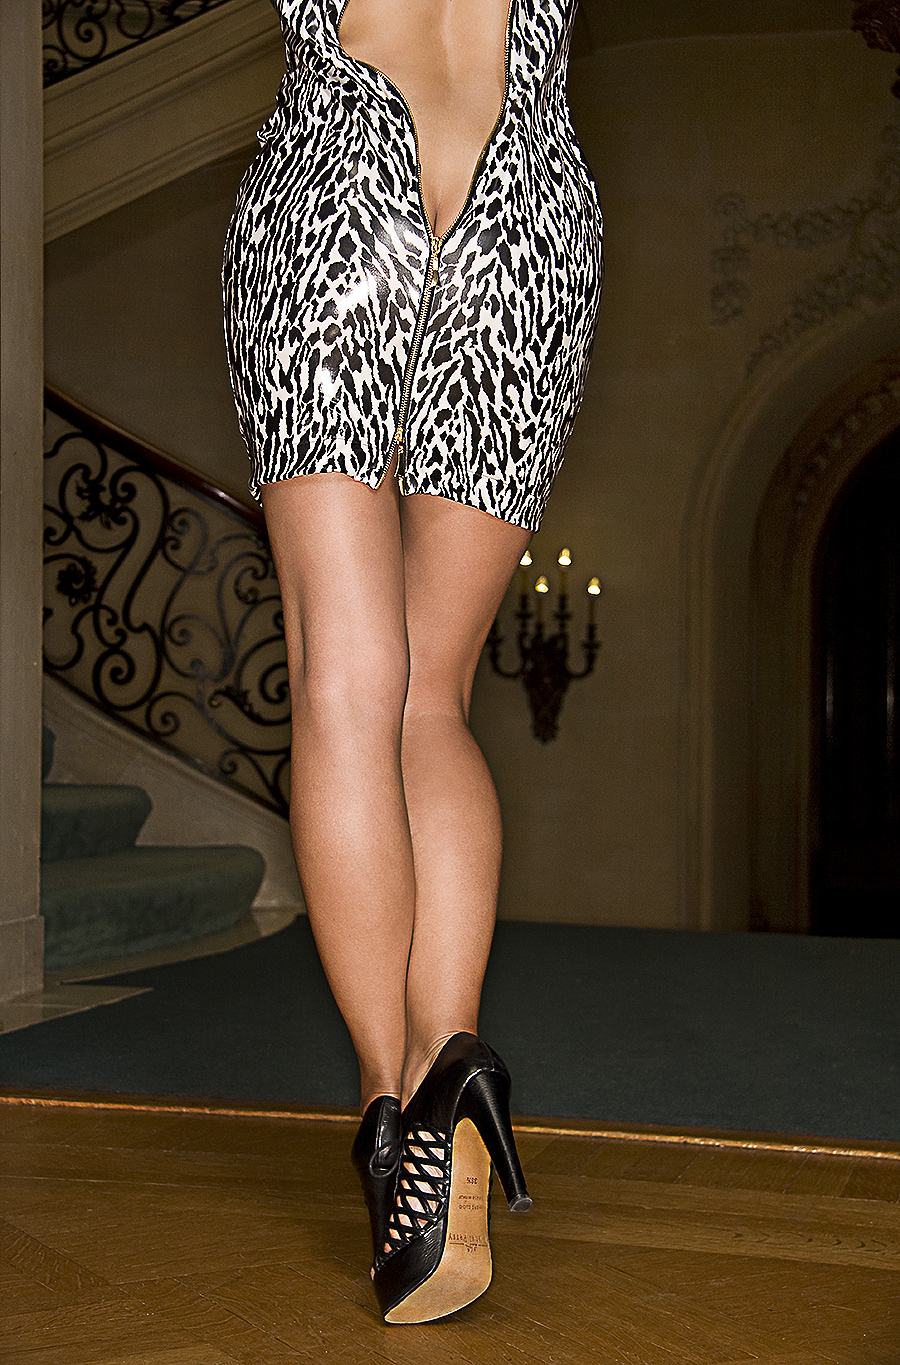 Tony_Ward_fashion_photography_zebra_lace_pattern_dress_black_fishnet_shoes_perfect_shape_mansion_color_large_rings_elegant_stairway_chandeliers_old_mansions_Elkins_Park_estates_model_Carmelita_Martel copy